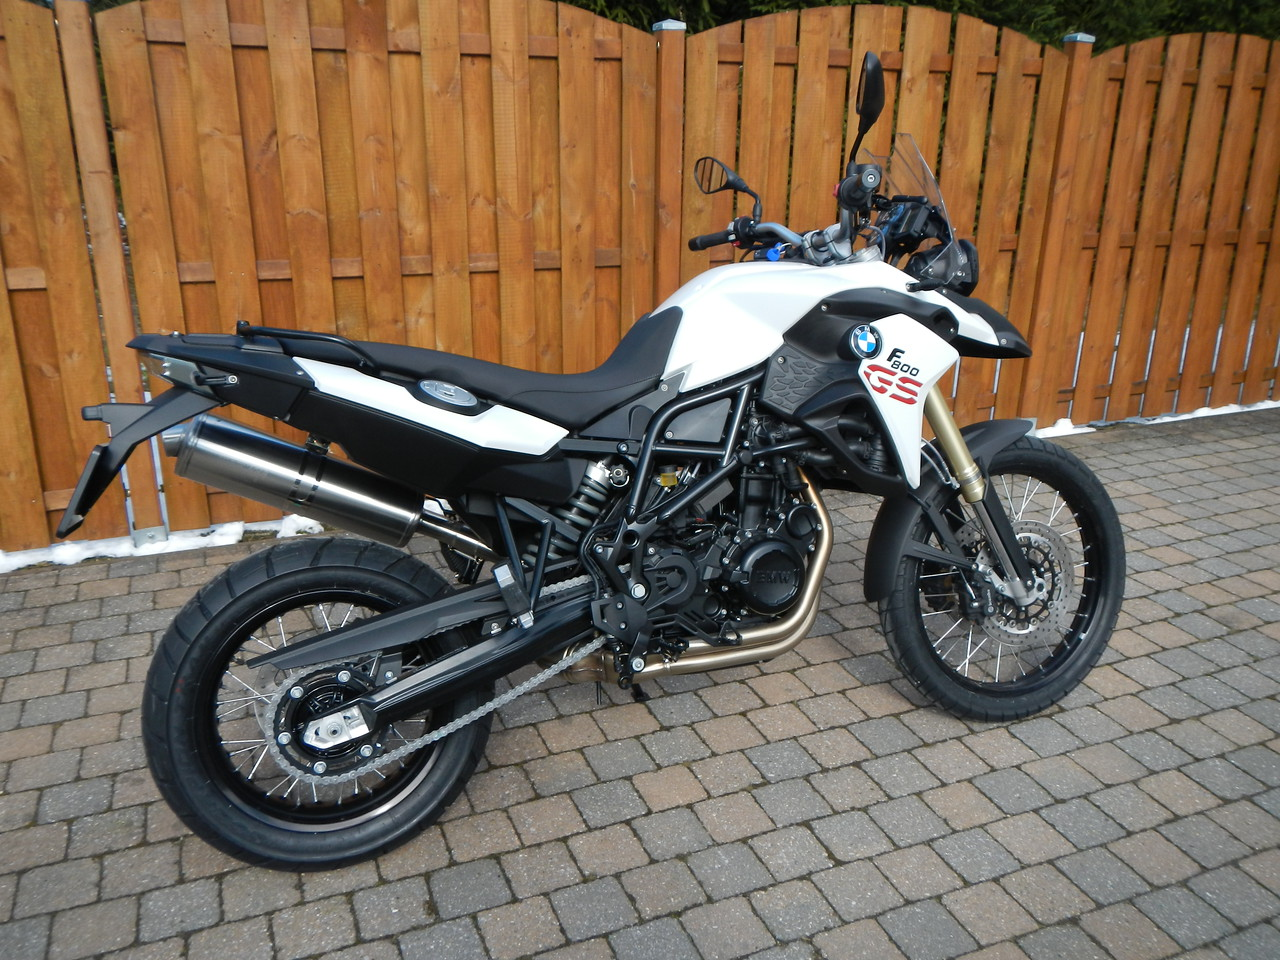 BMW F800GS model 2013. Rechter zijaanzicht.